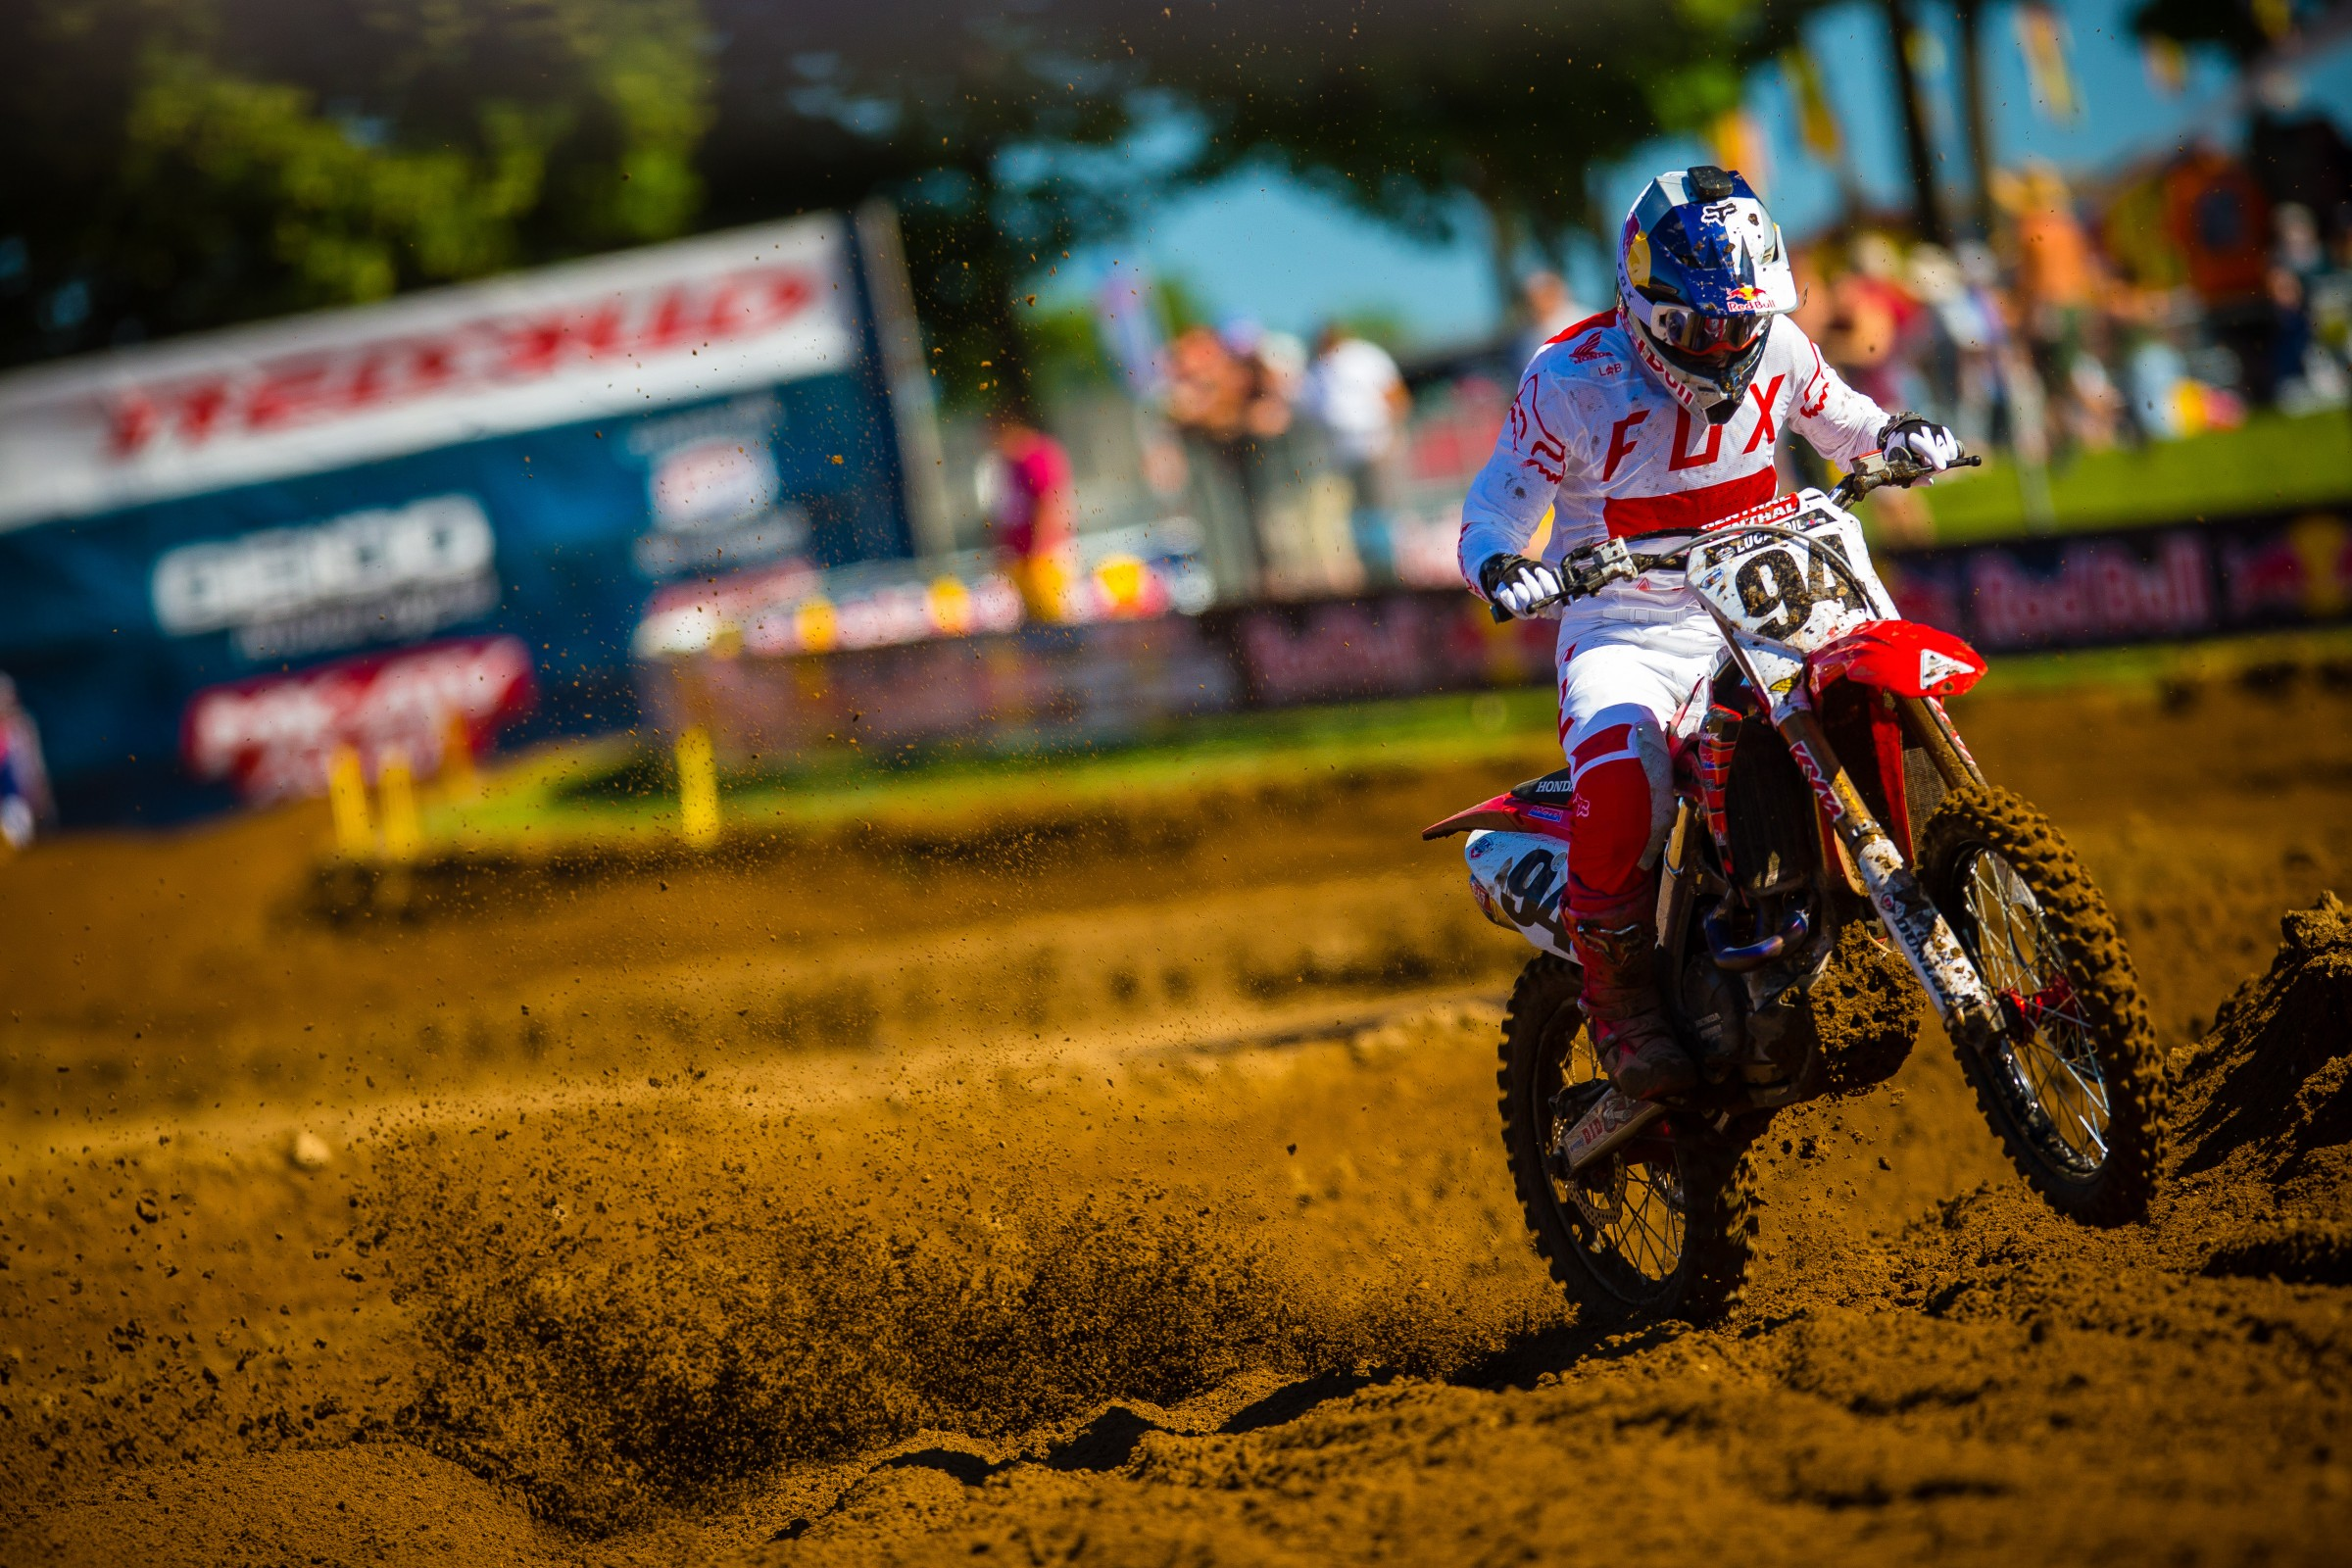 Roczen took his first outdoor moto win in two years, taking second place overall at round seven.